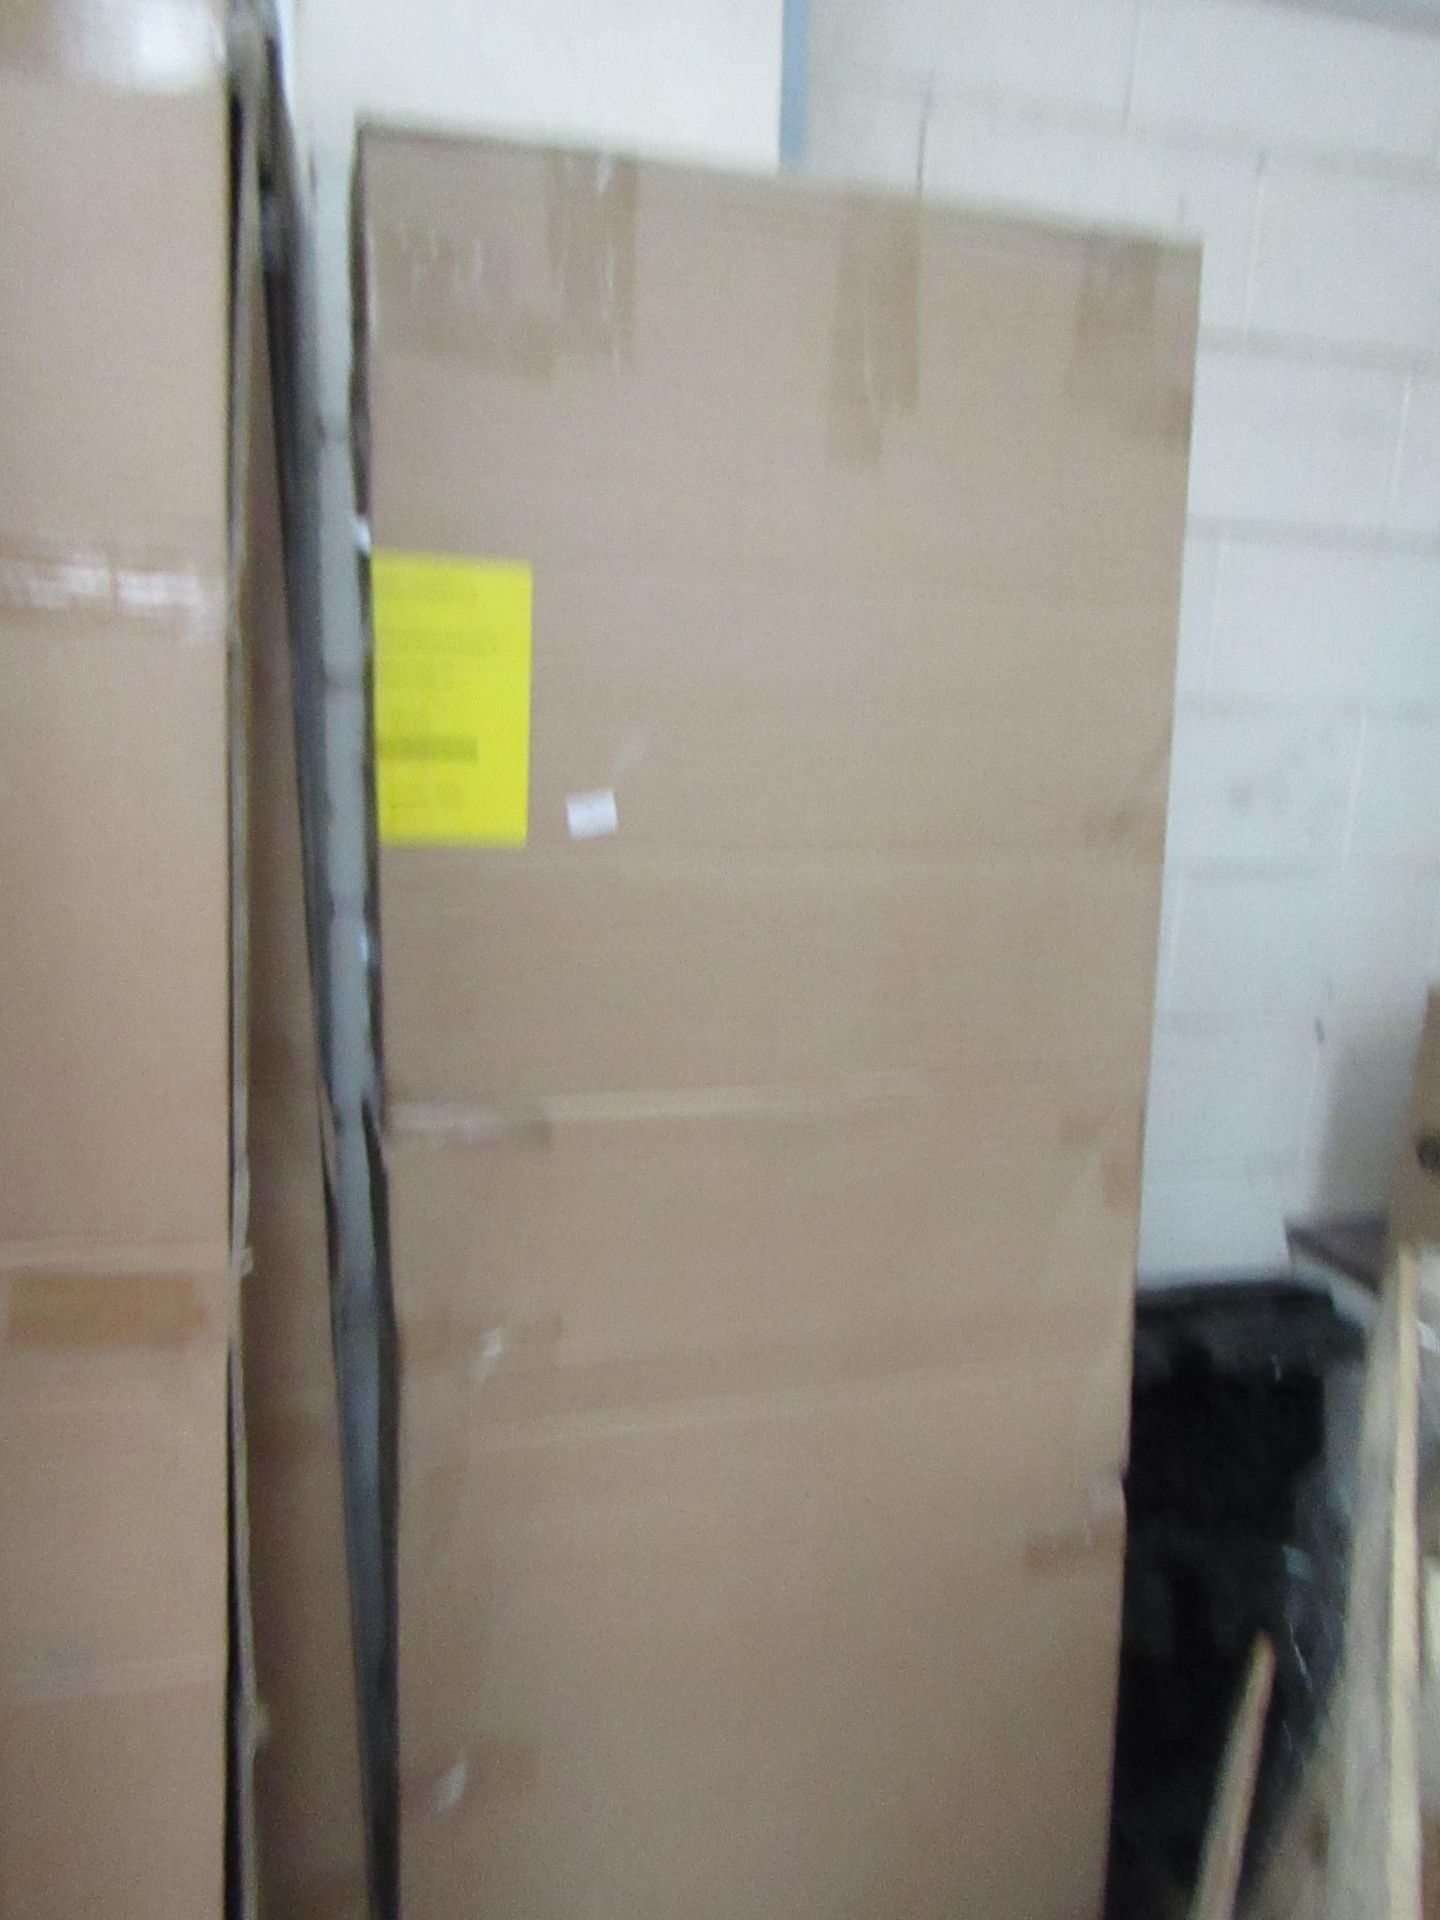 Lot 58 - Manhattan glass Quad shower enclosure (no Tray), 1200x900m, unused and boxed, comes in 2 boxes which